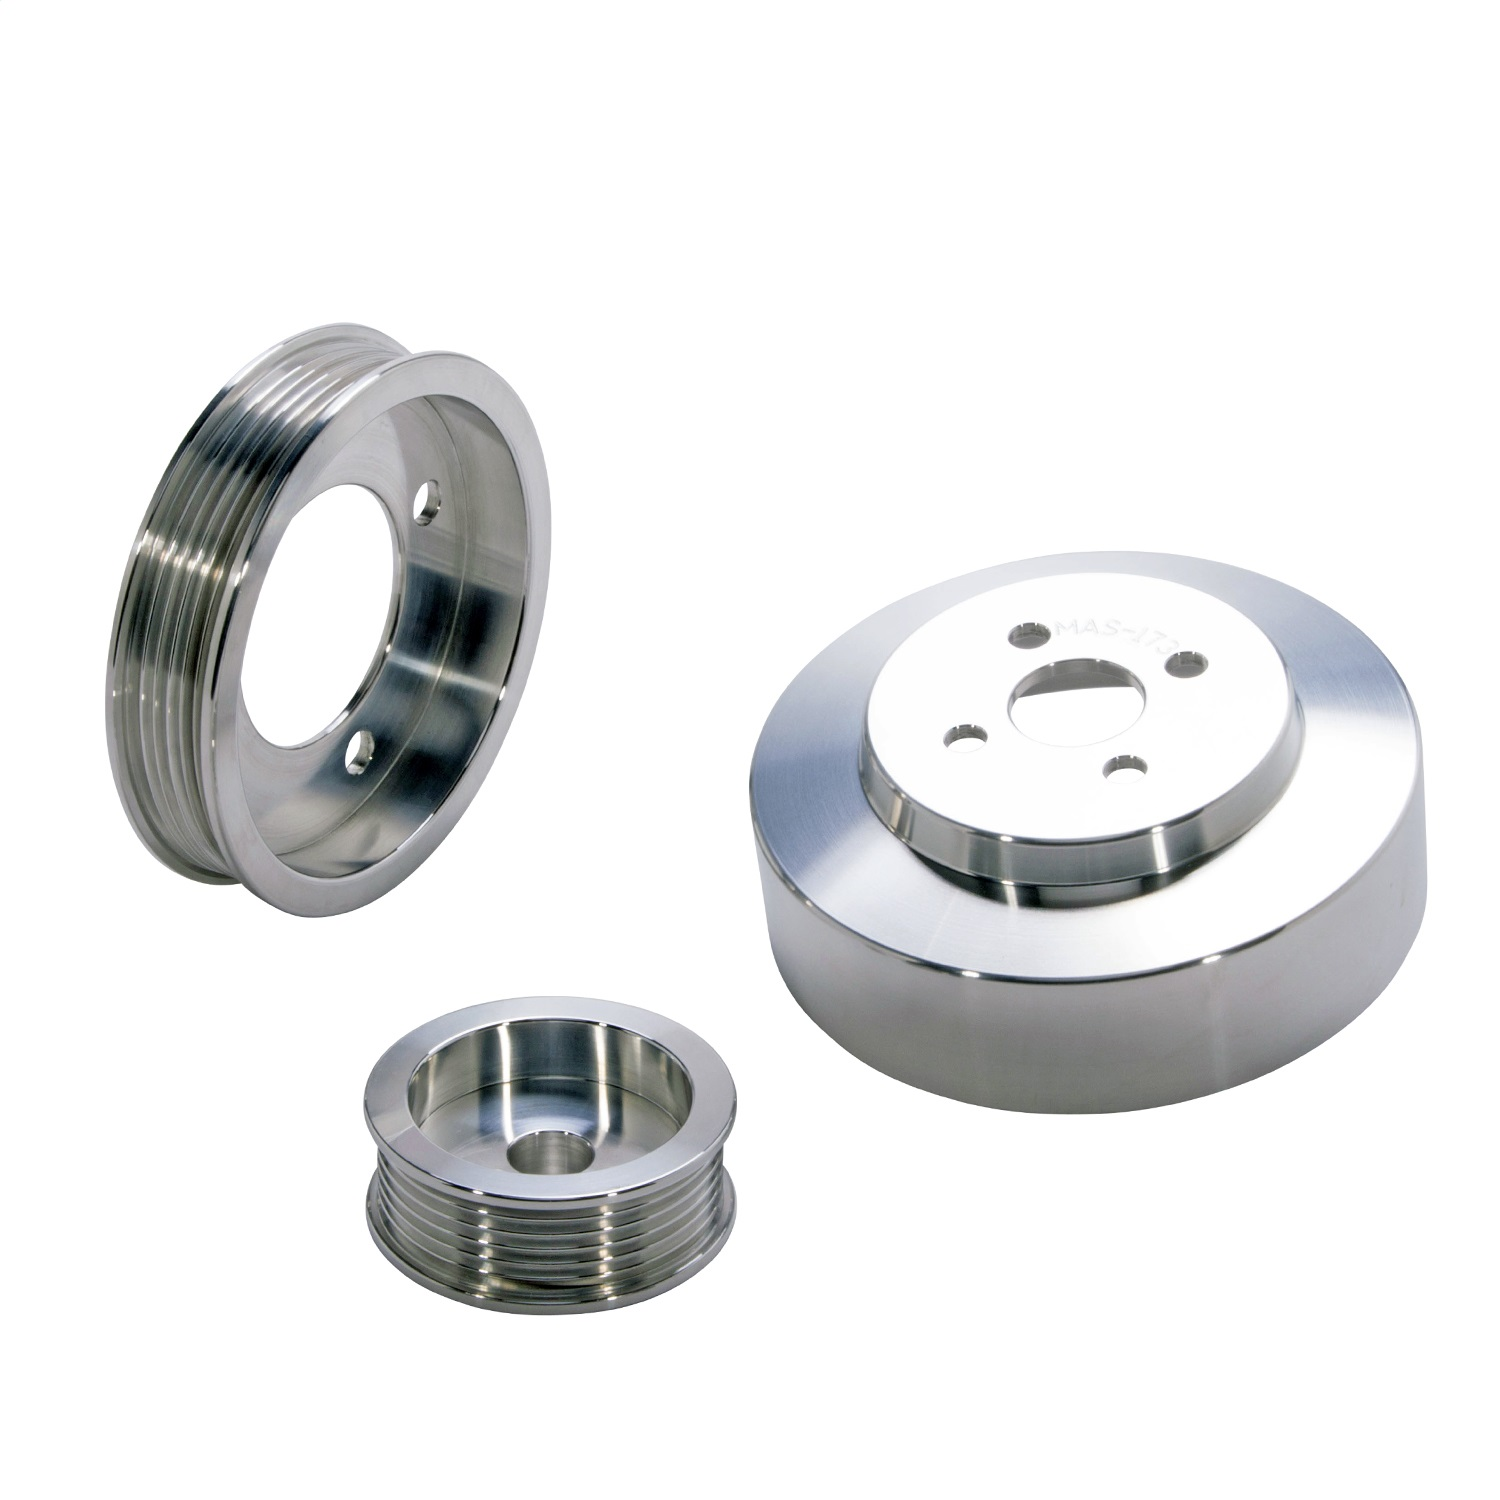 BBK Performance Parts 1554 Power-Plus Series Underdrive Pulley System